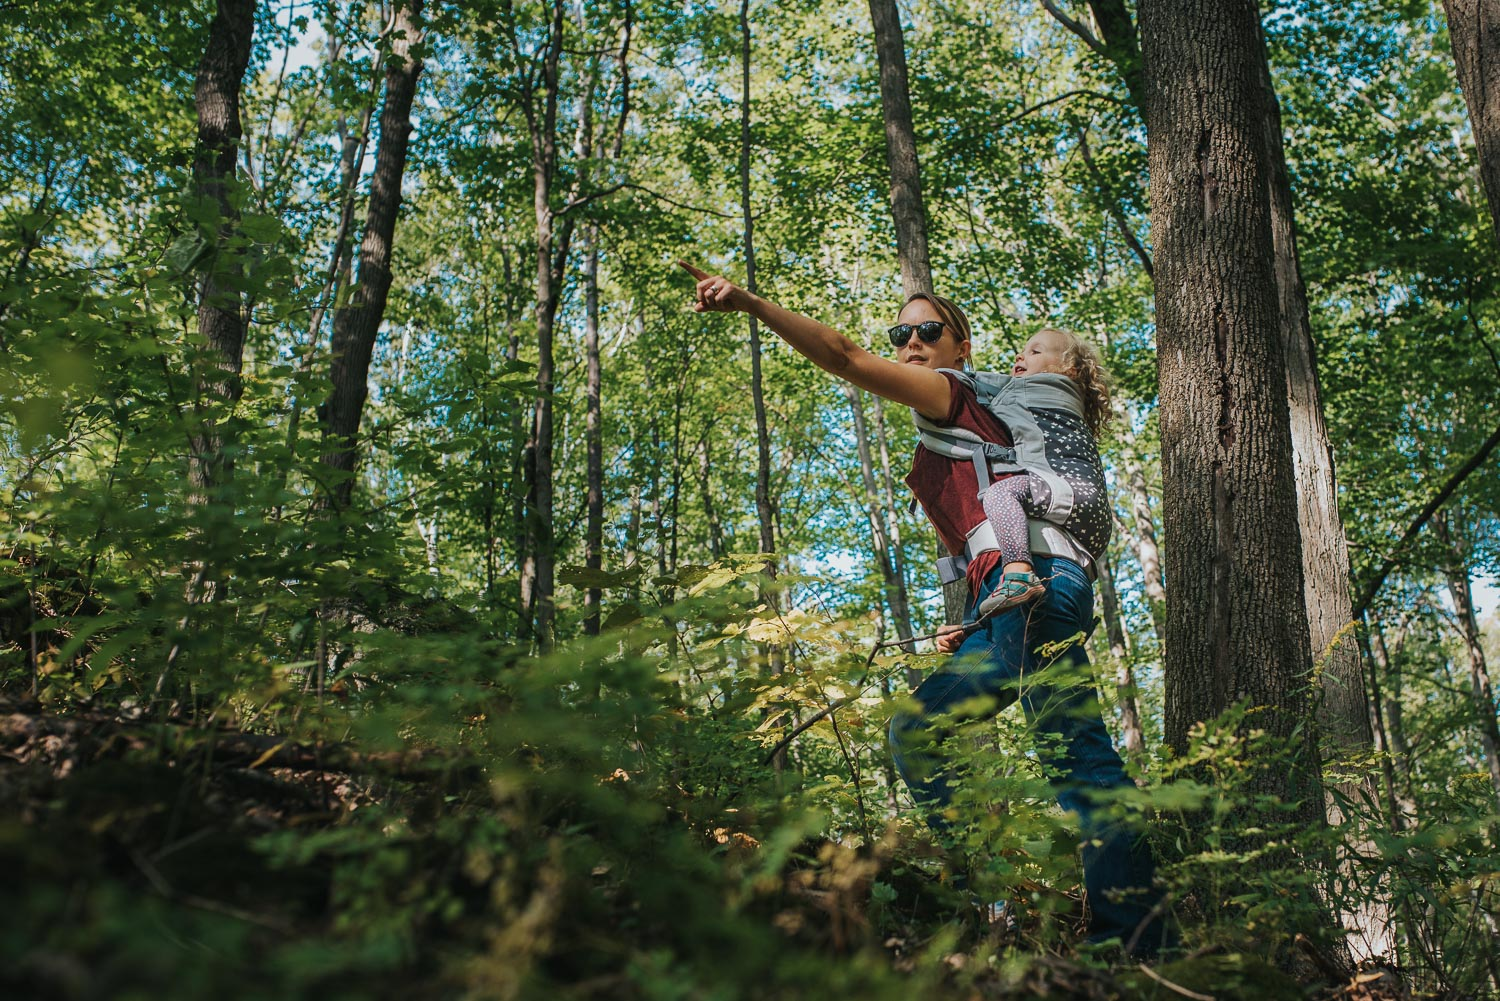 A mother in jeans and a burgundy tshirt with a toddler in a baby carrier on her back hiking up an incline in the woods and pointing off in the distance